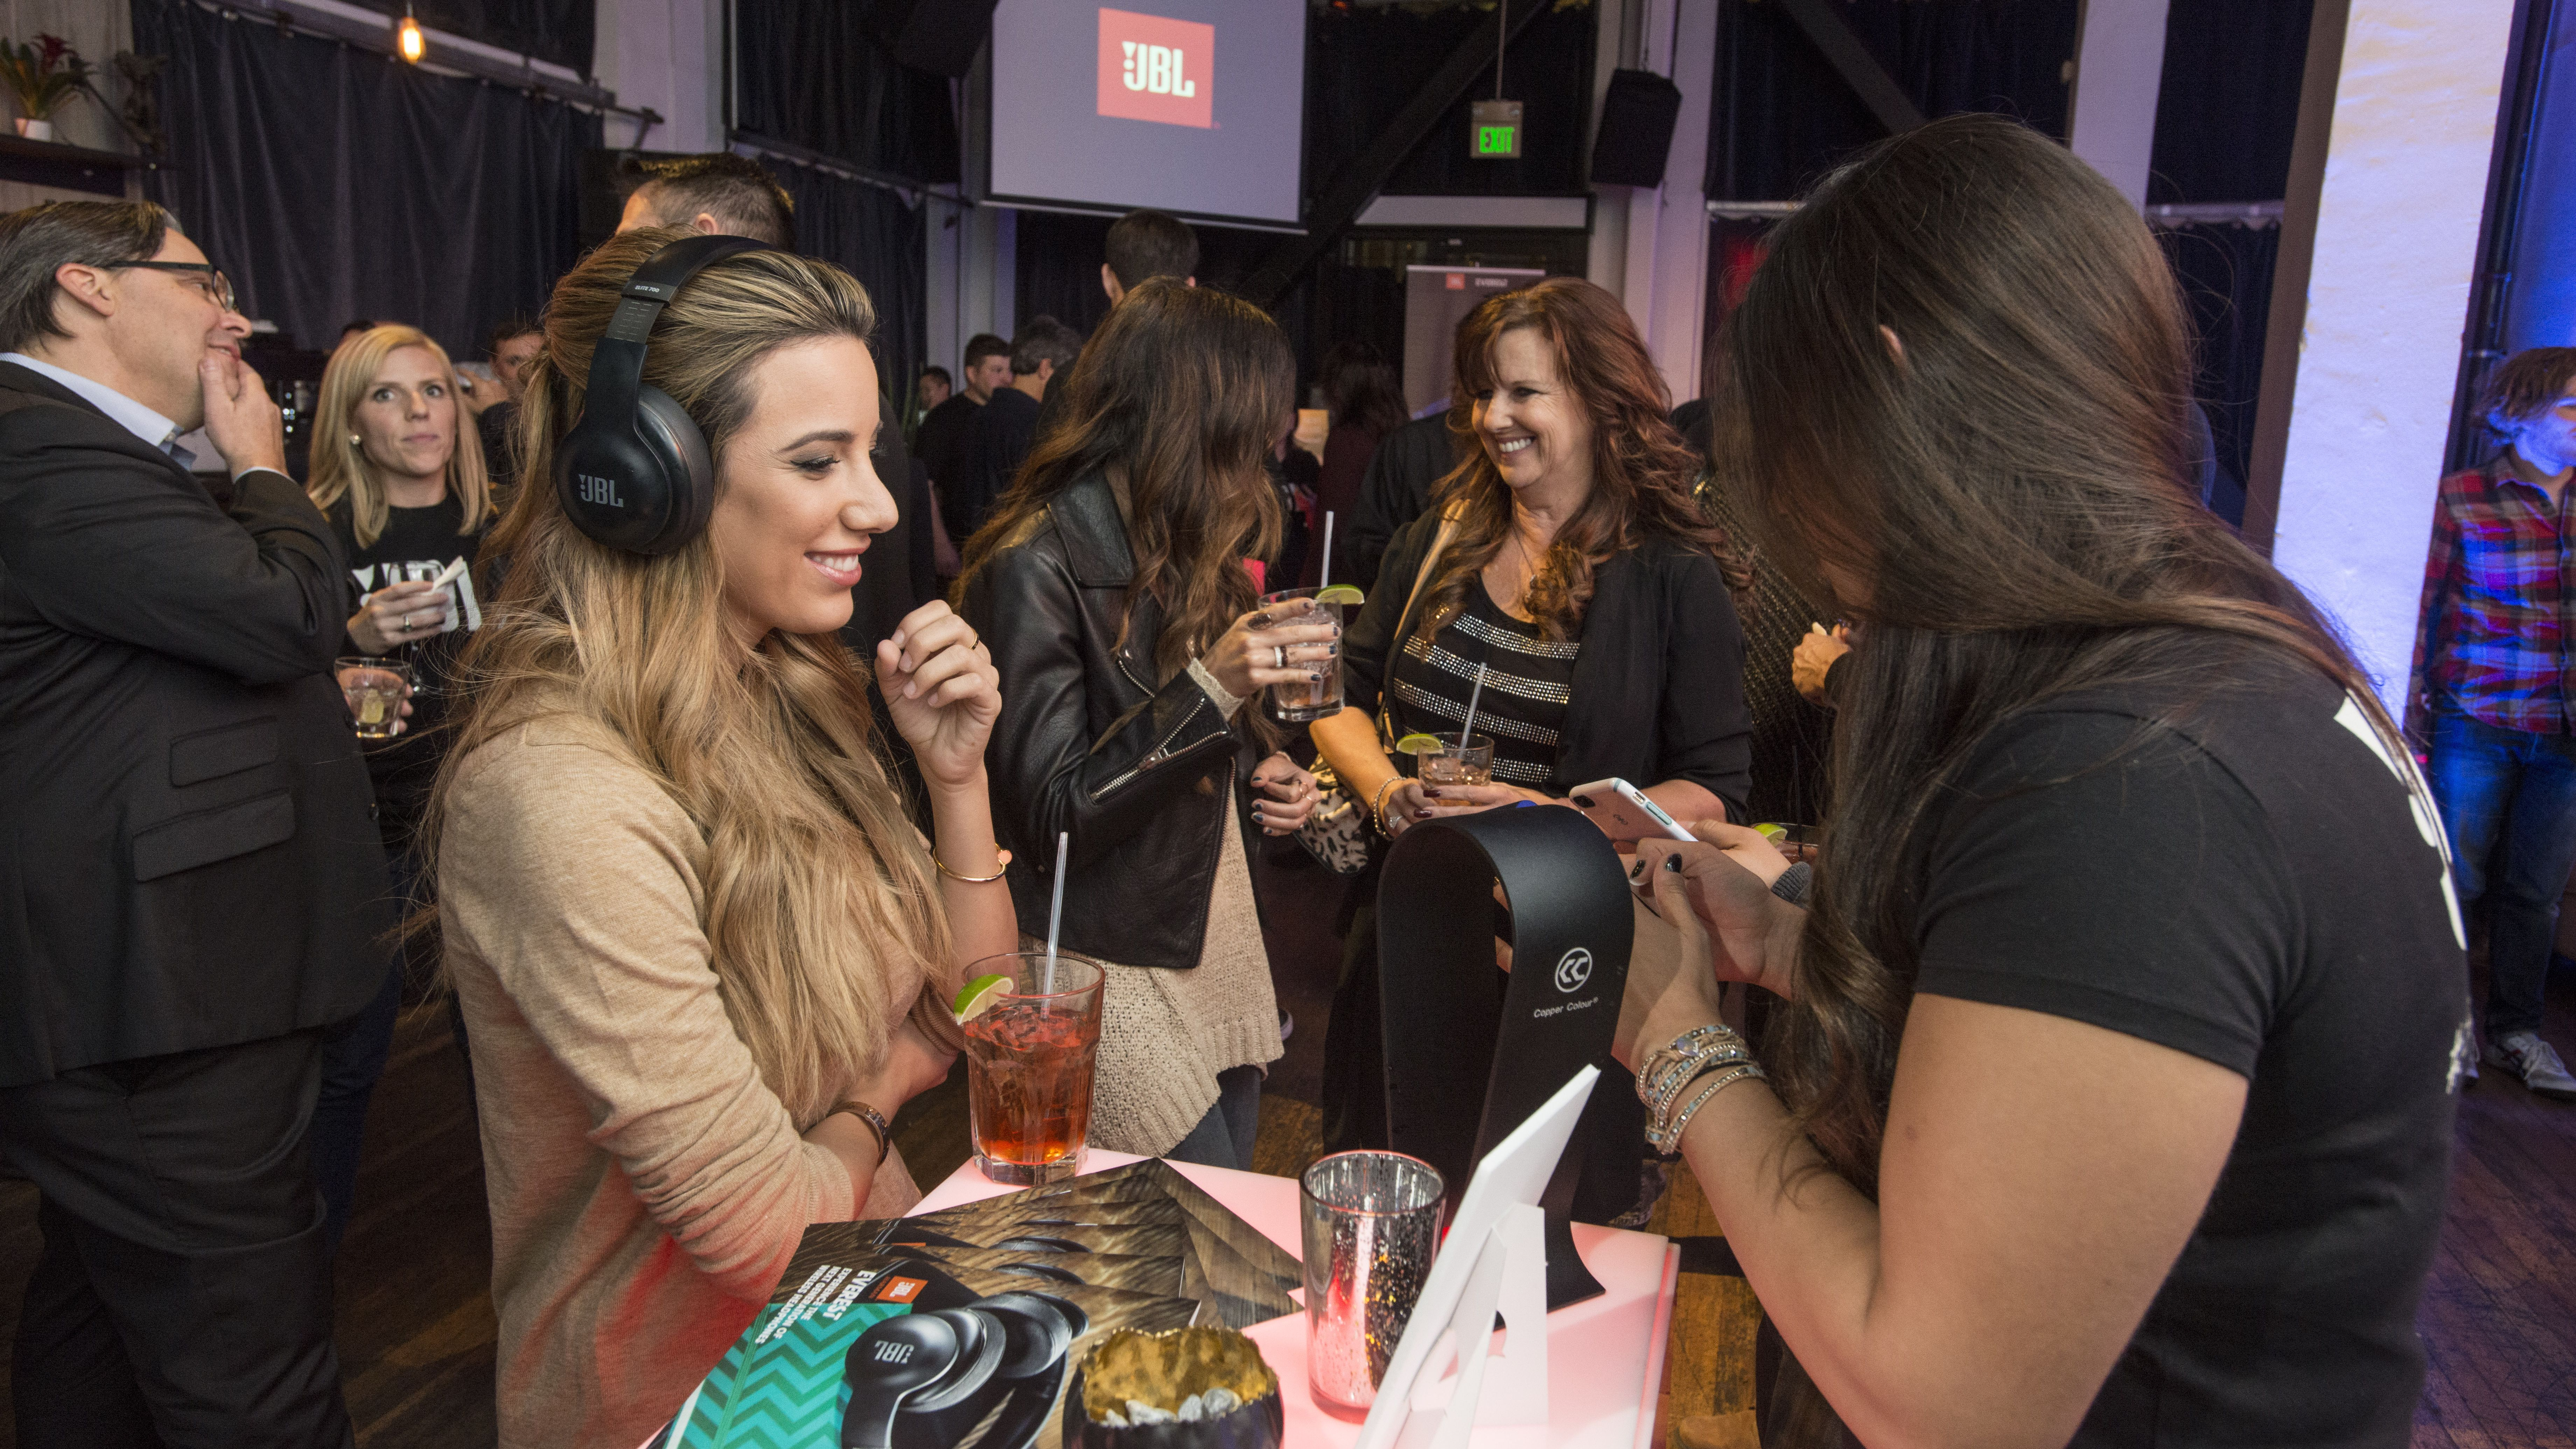 IMAGE DISTRIBUTED FOR JBL - JBL unveils the new JBL Everest™ series, a line of five wireless headphones in San Francisco, Calif., Wednesday, Nov. 11, 2015.